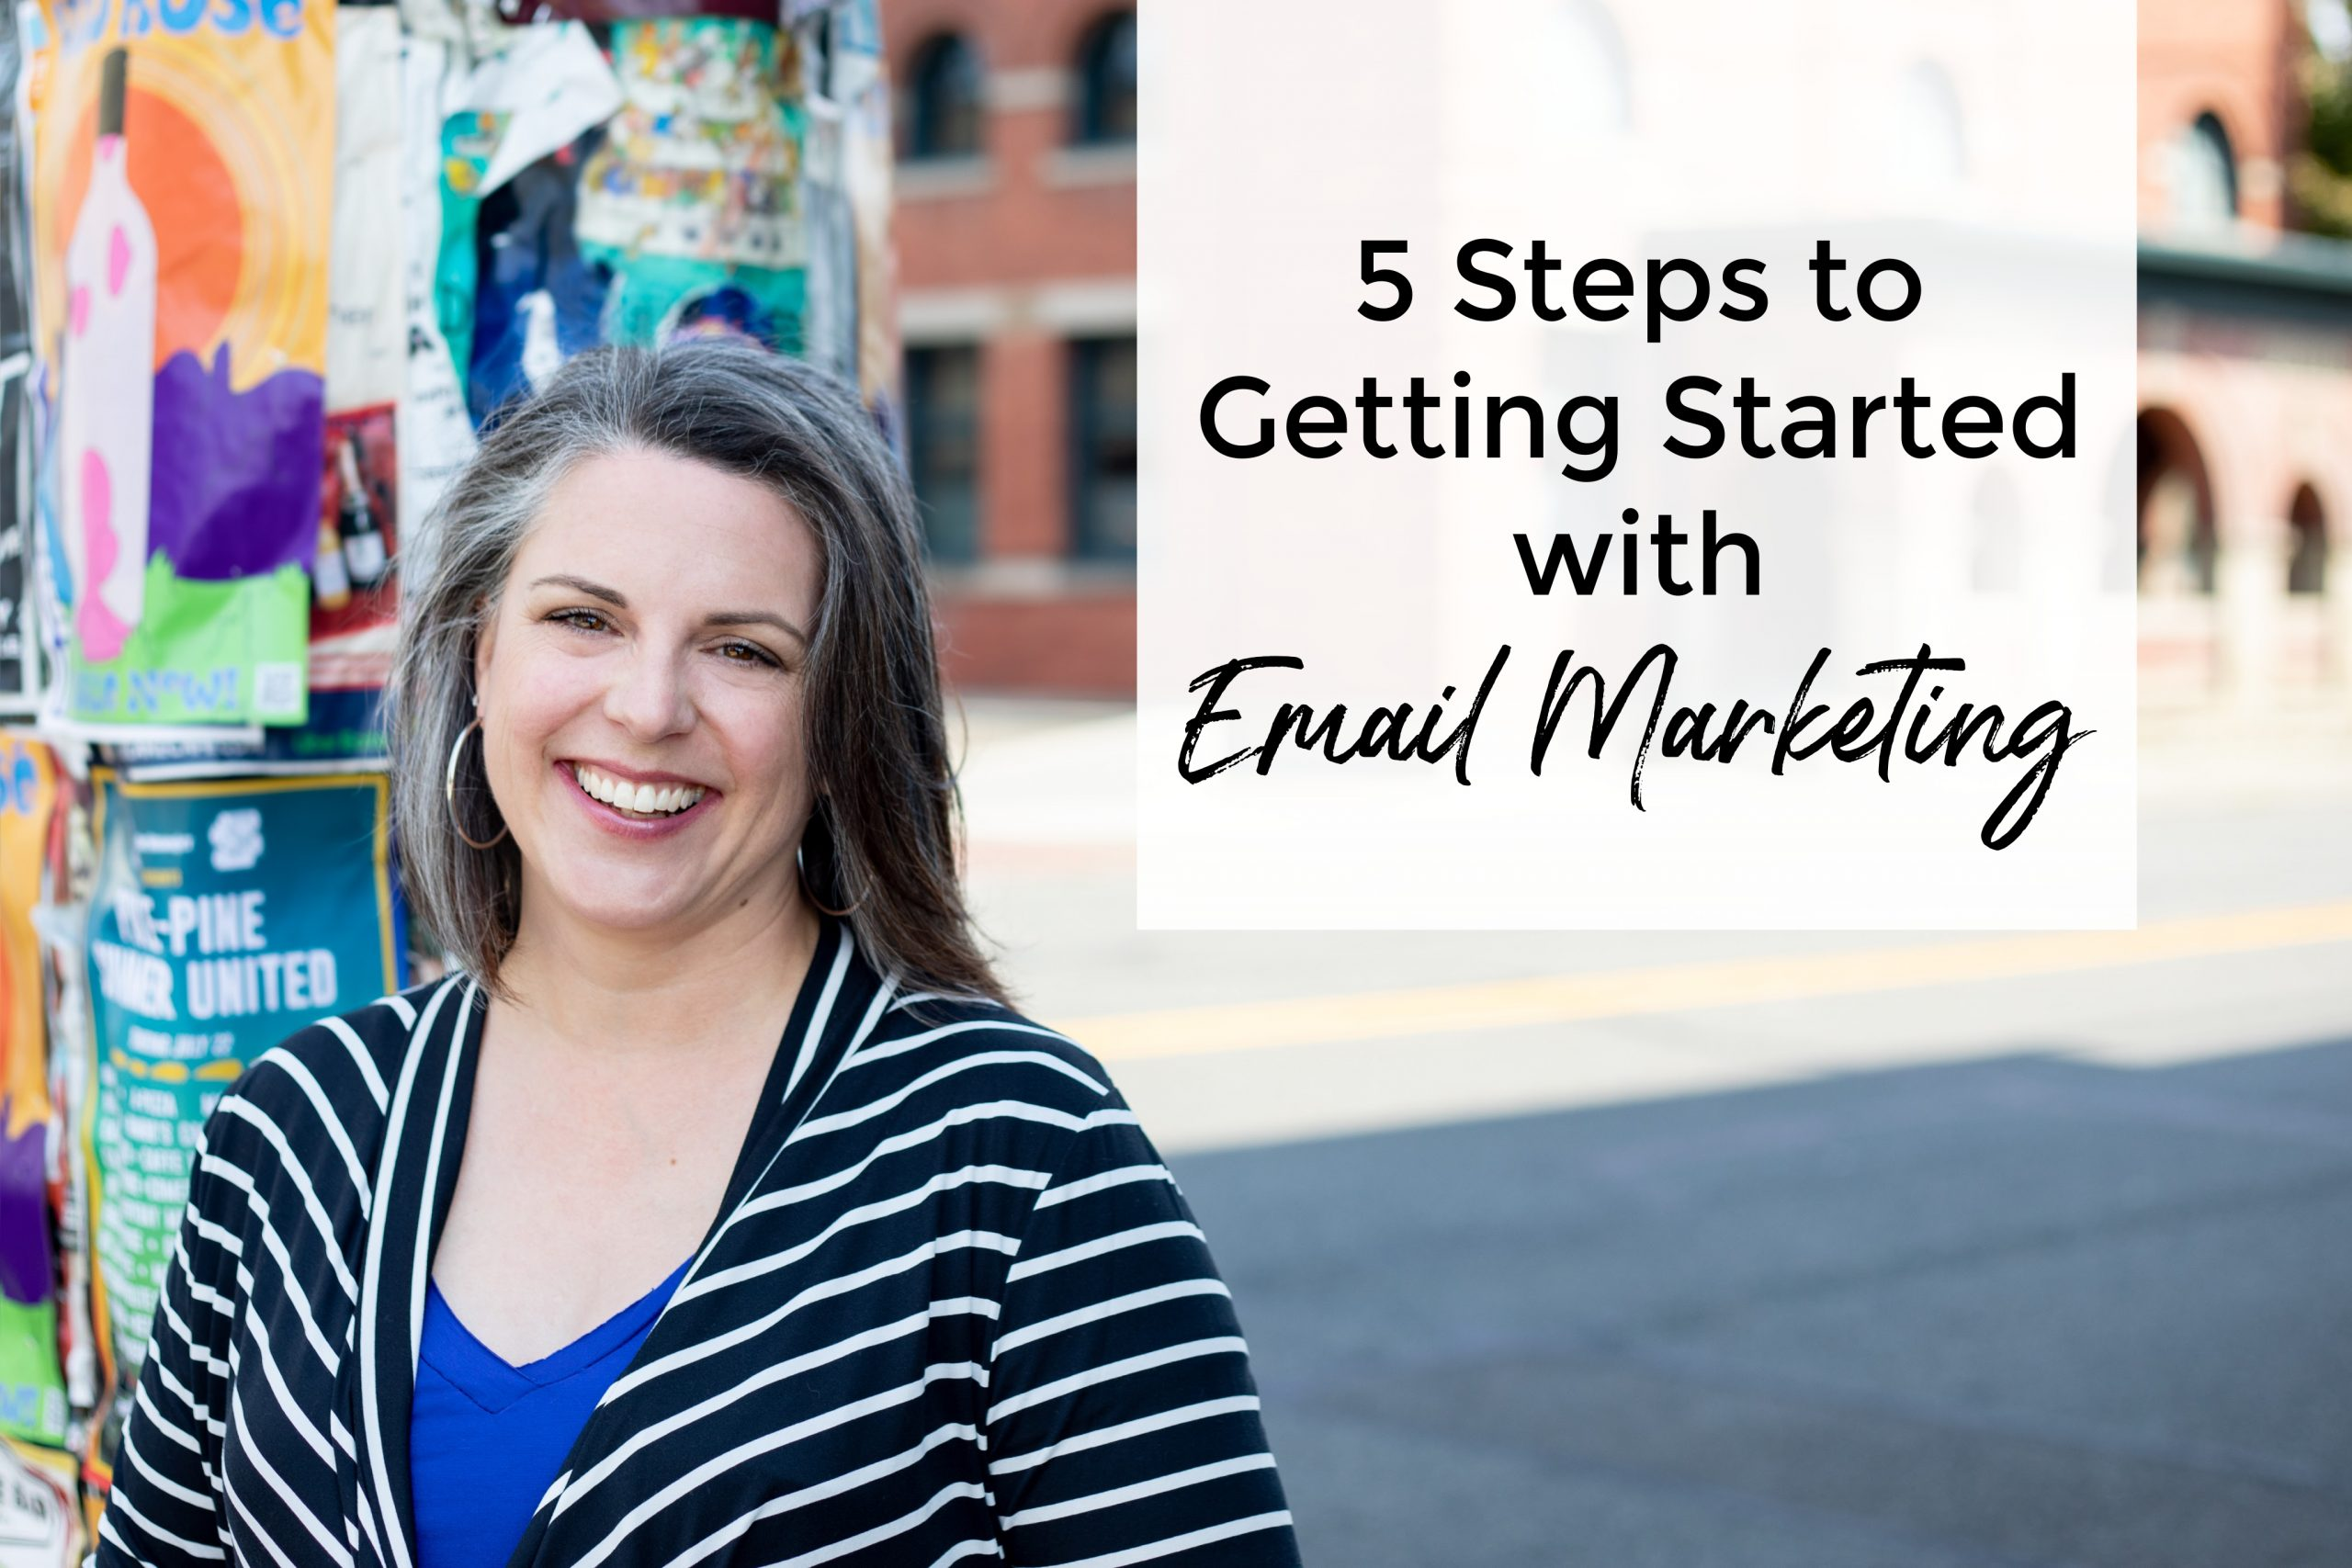 Getting started with email marketing doesn't have to be hard or overwhelming. Here are 5 tips to help and 33 lead magnet ideas to help you grow your list, too!